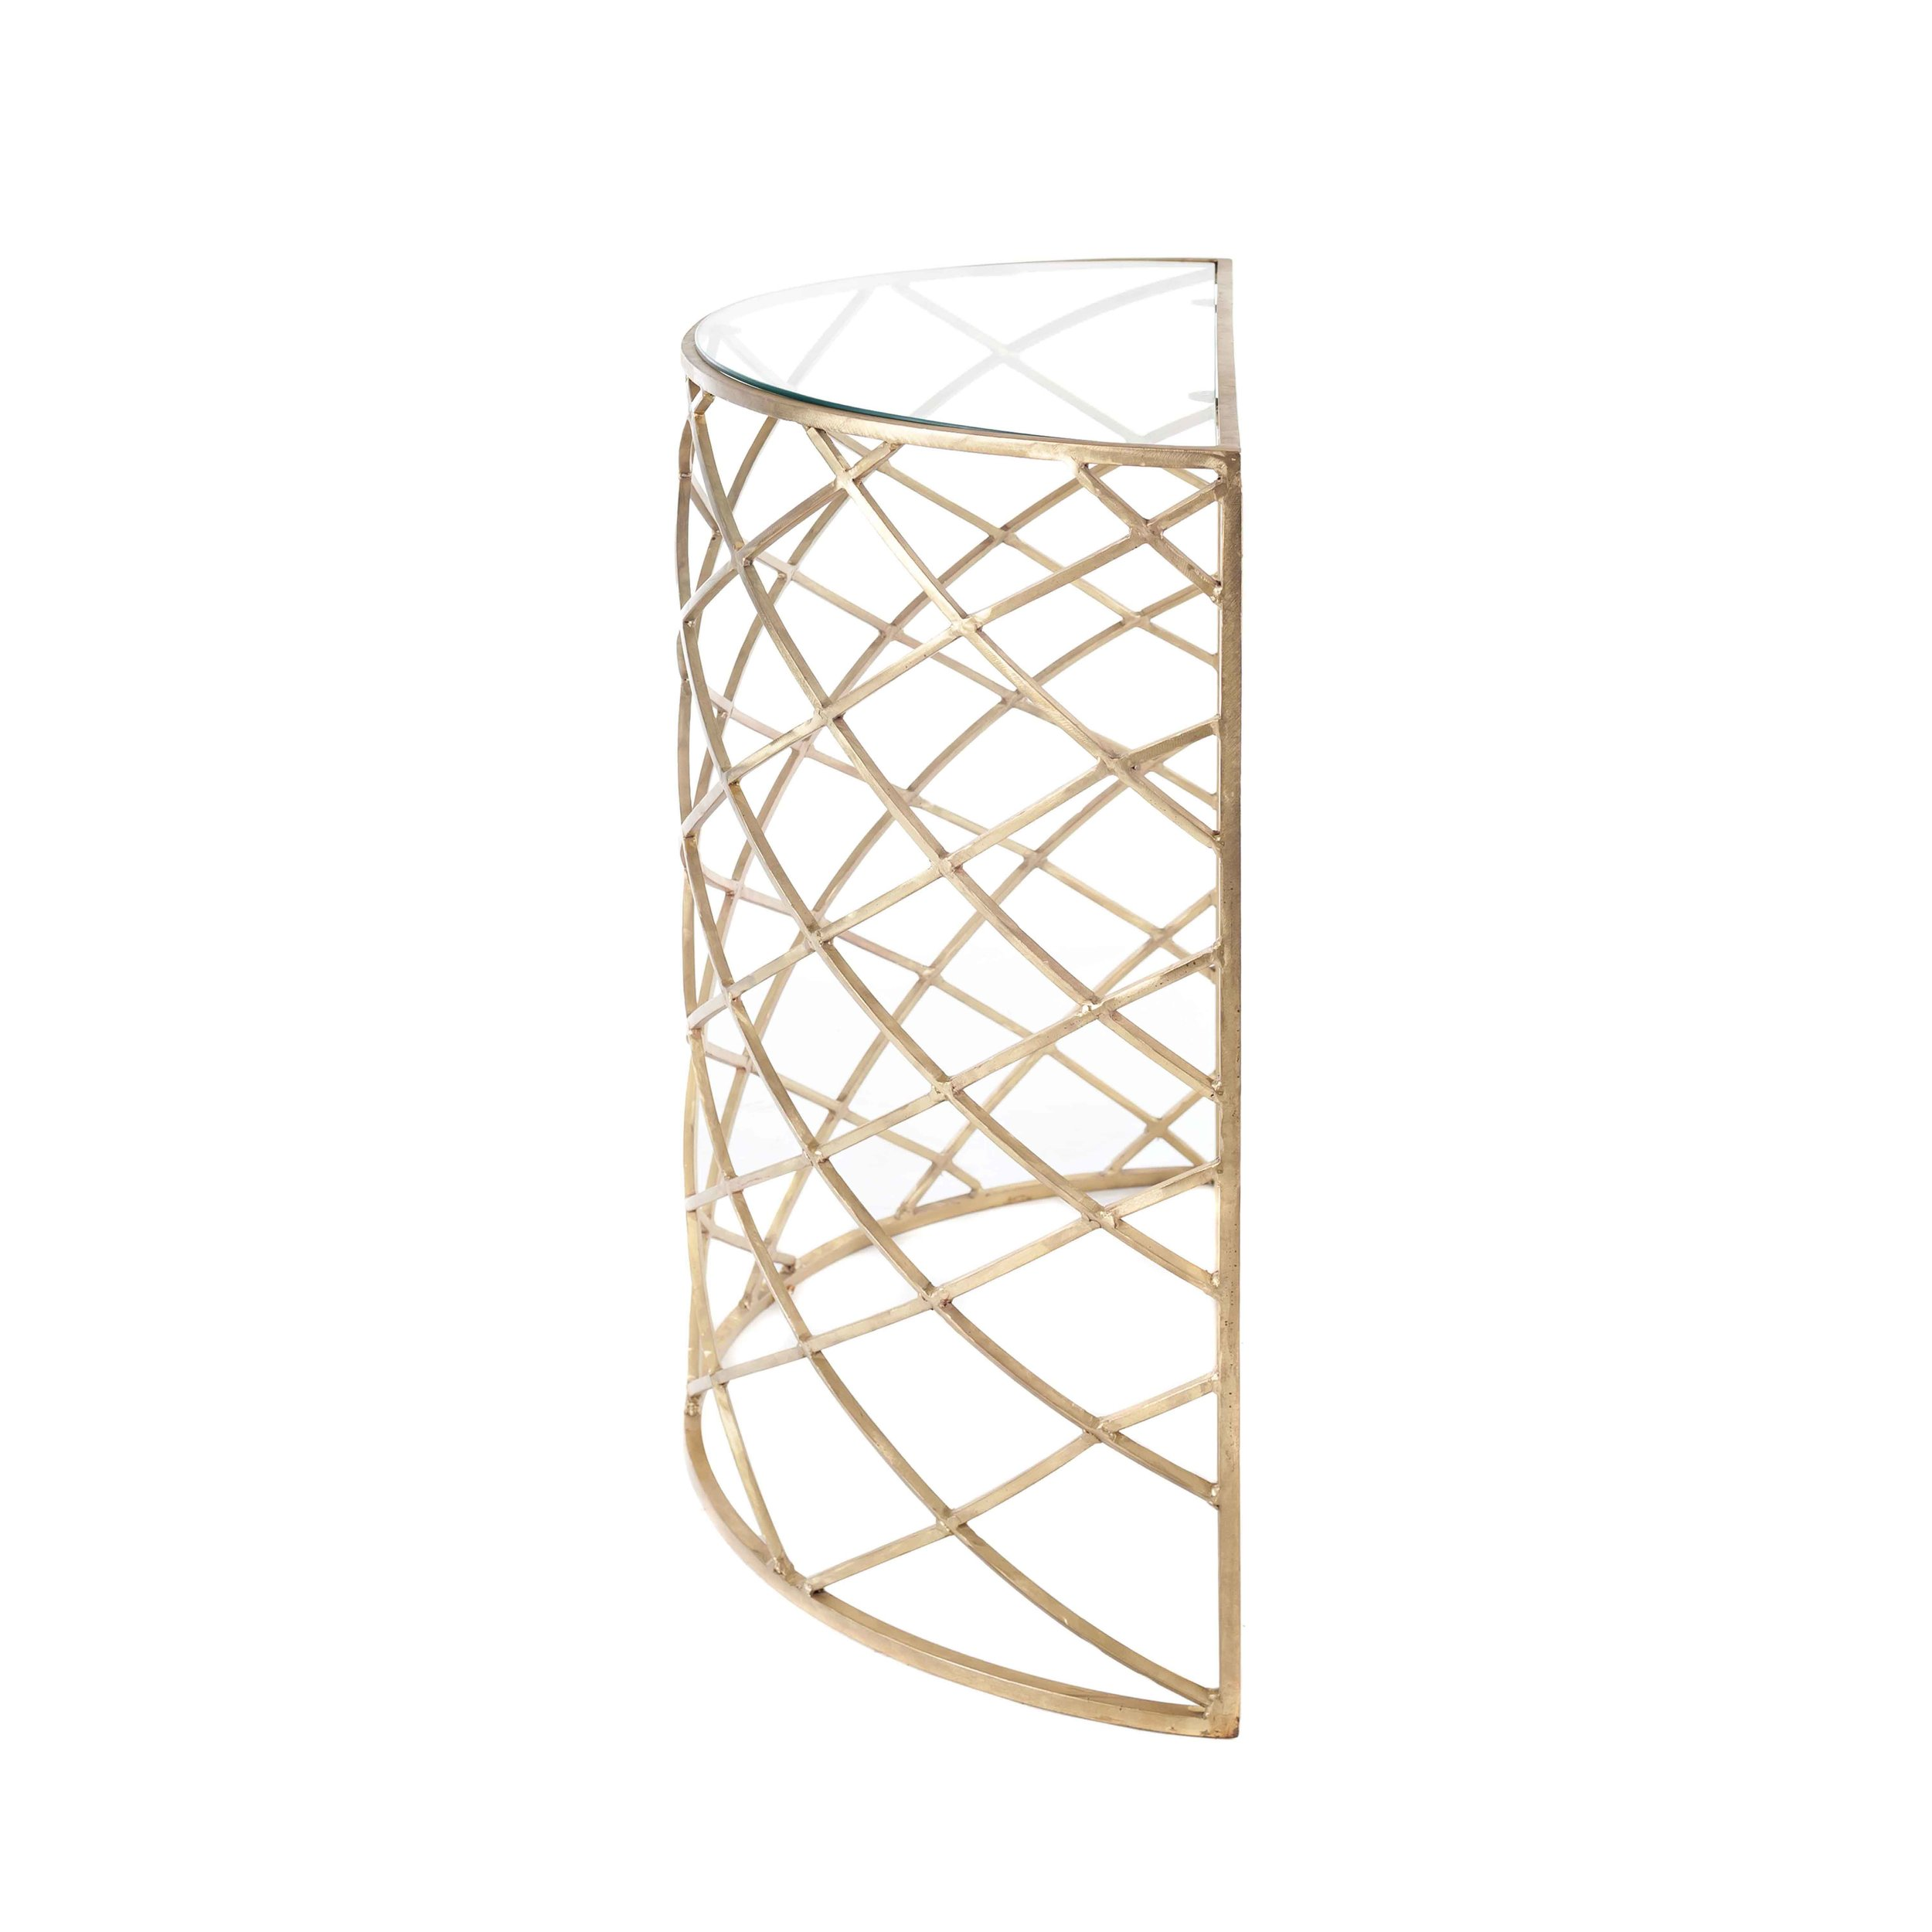 Ribbon Console Table Side_lowres copy.jpg